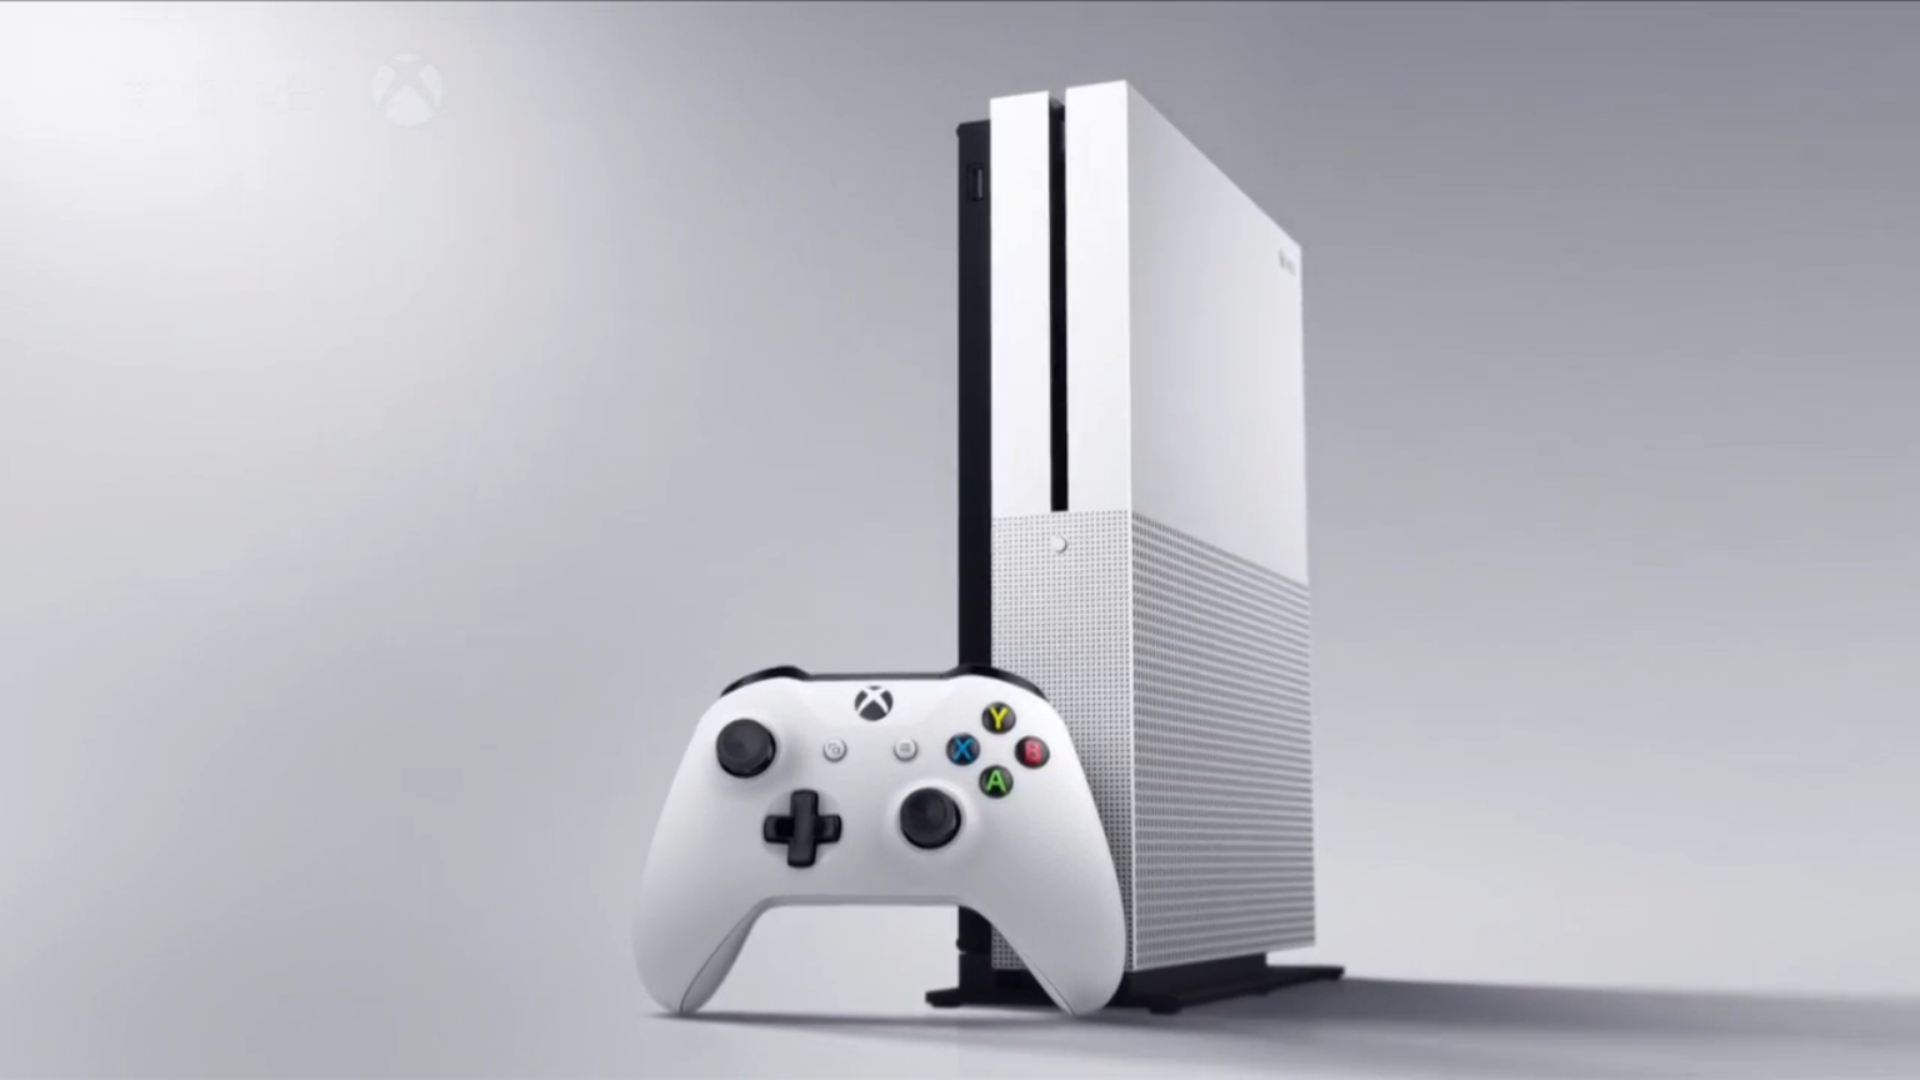 This Xbox One S deal comes with 7 games, saving you a silly